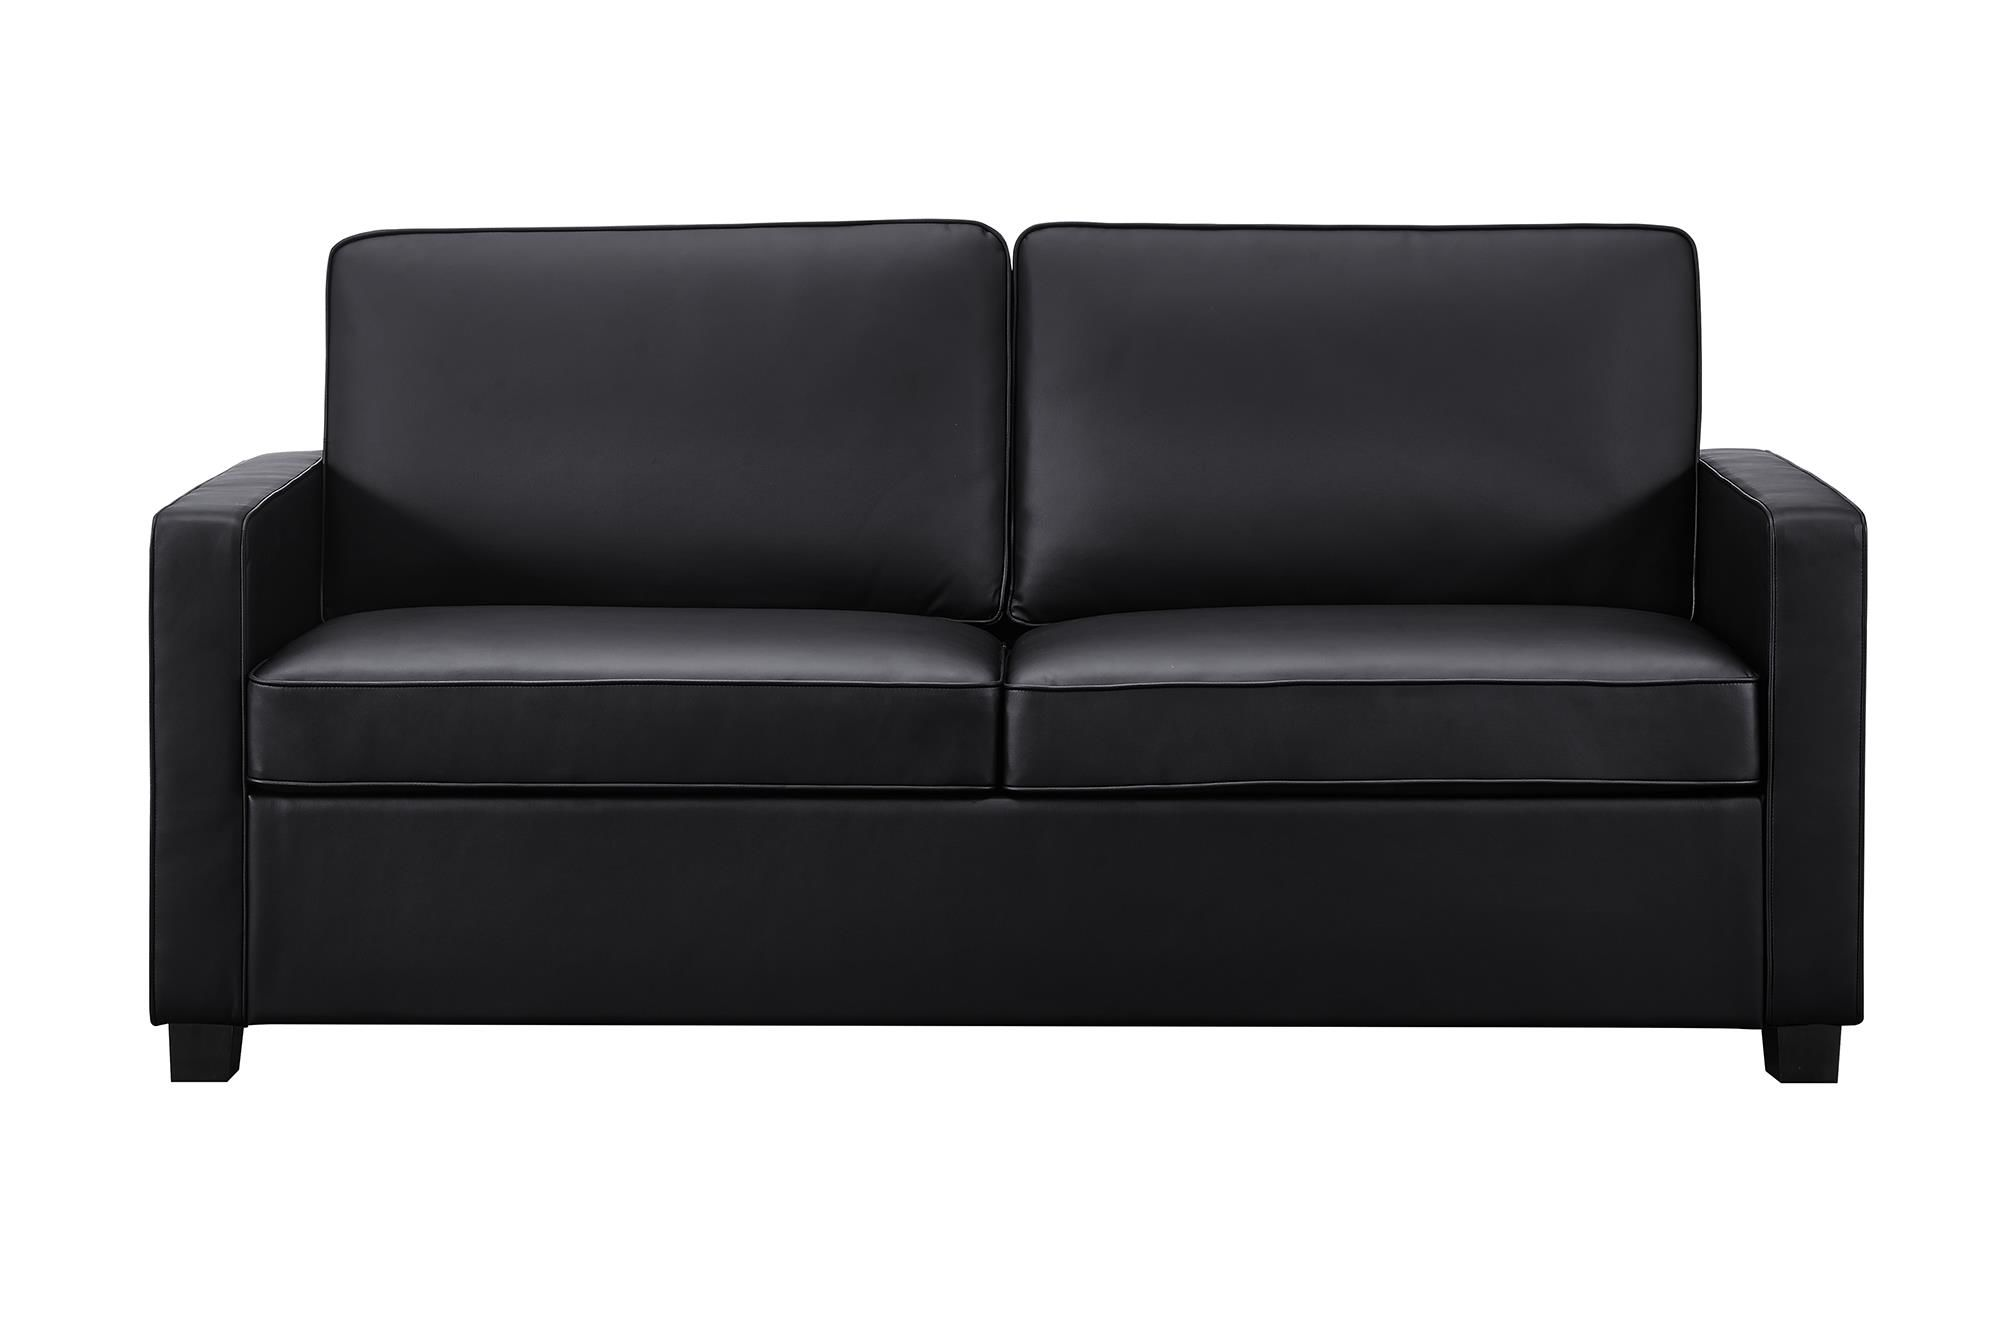 stylish memory foam sofa model-Luxury Memory Foam sofa Portrait